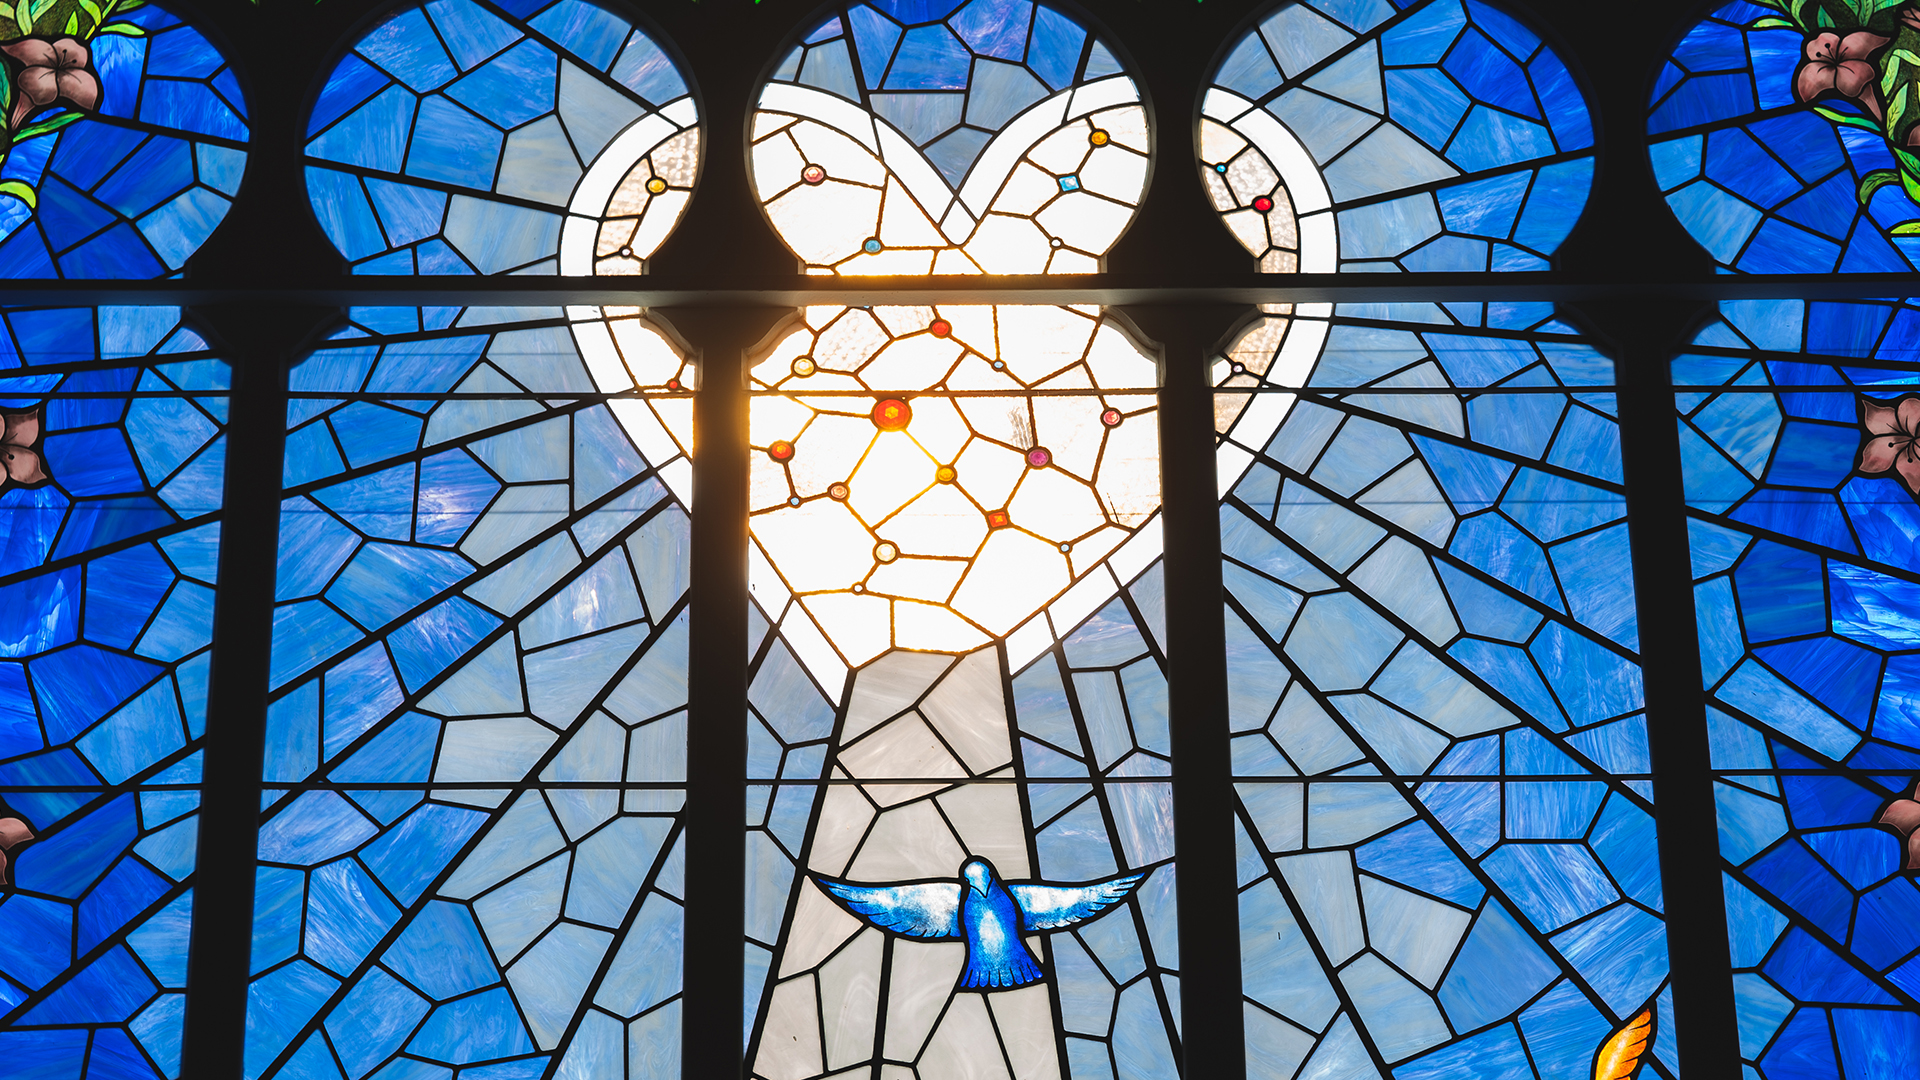 Stained Glass image of heart